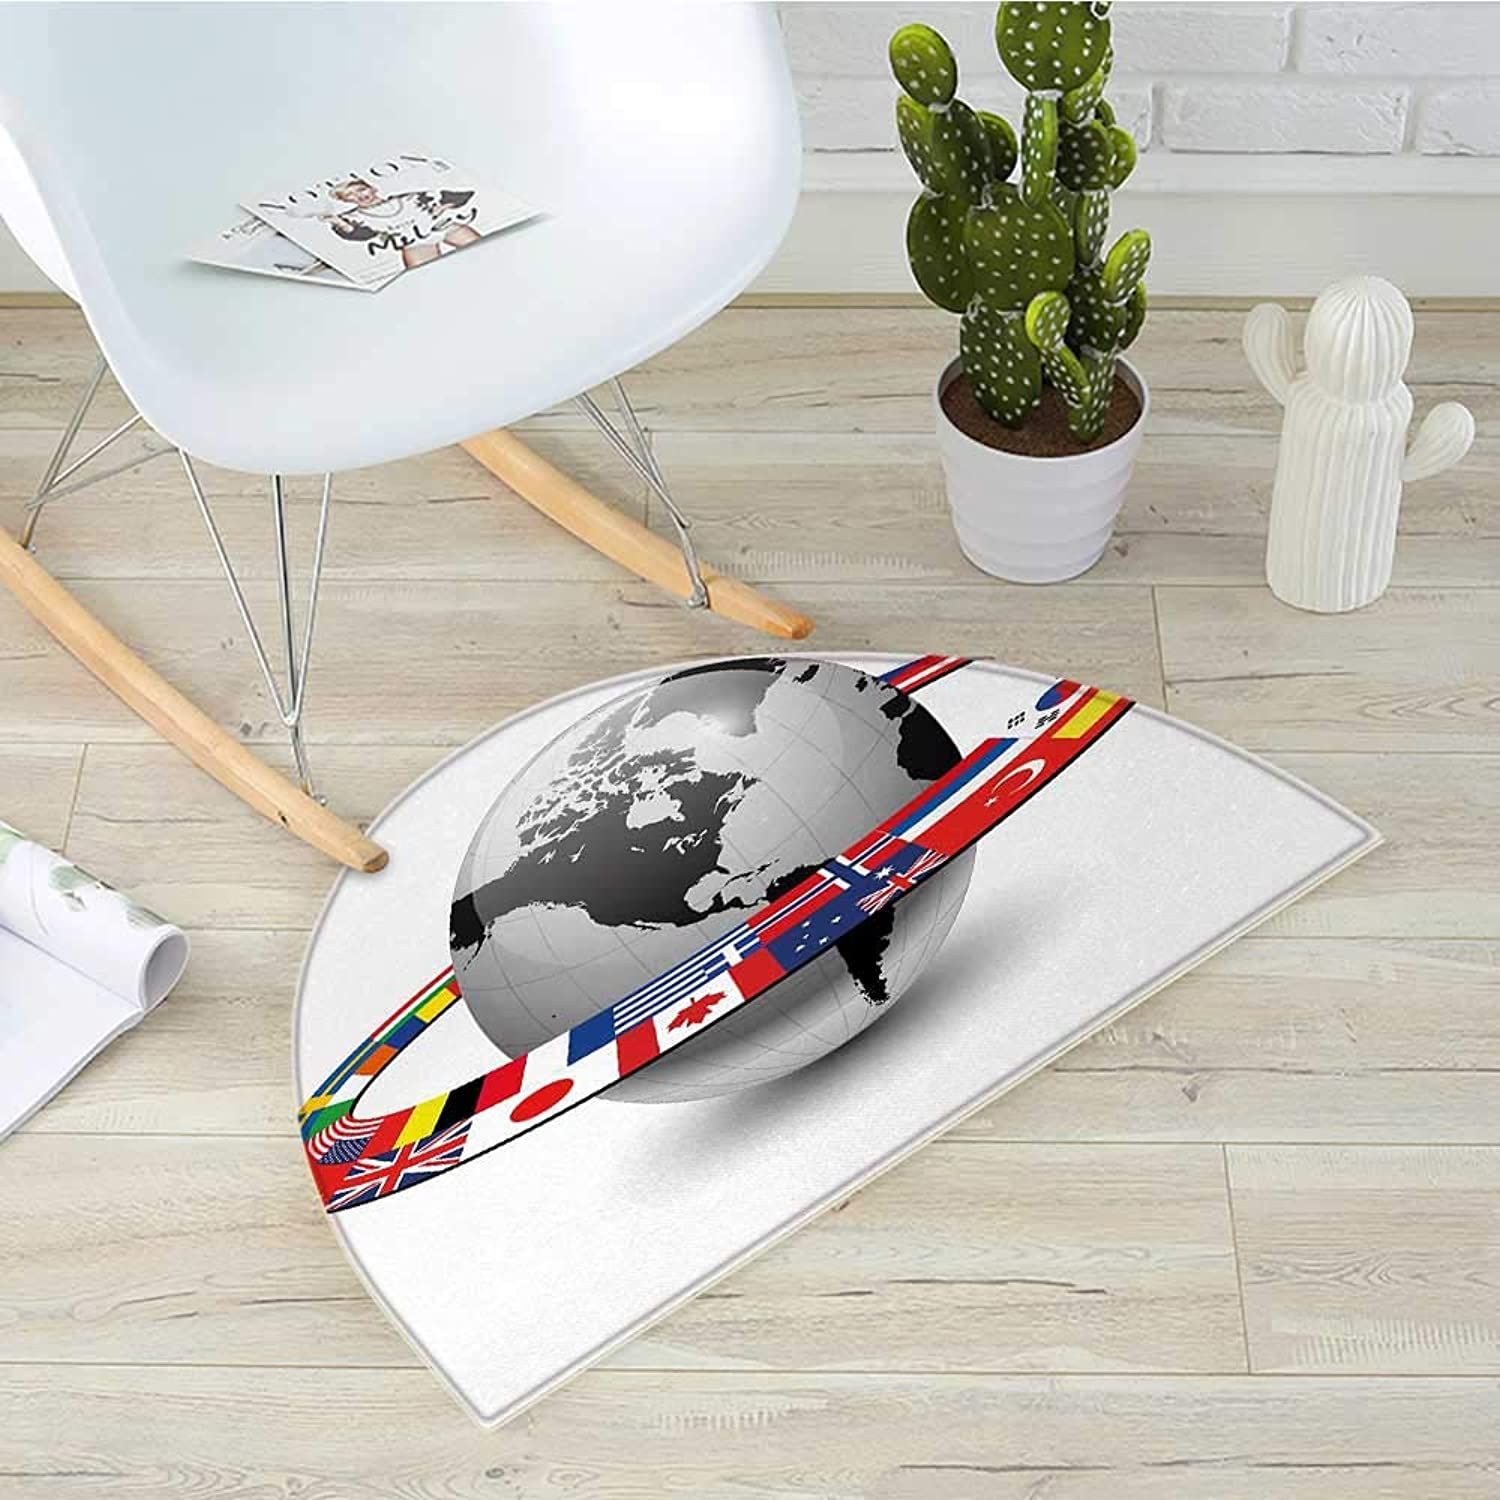 World Semicircle Doormat Earth Planet with Orbit Made from National Flags International Composition Countries Halfmoon doormats H 19.7  xD 31.5  Multicolor